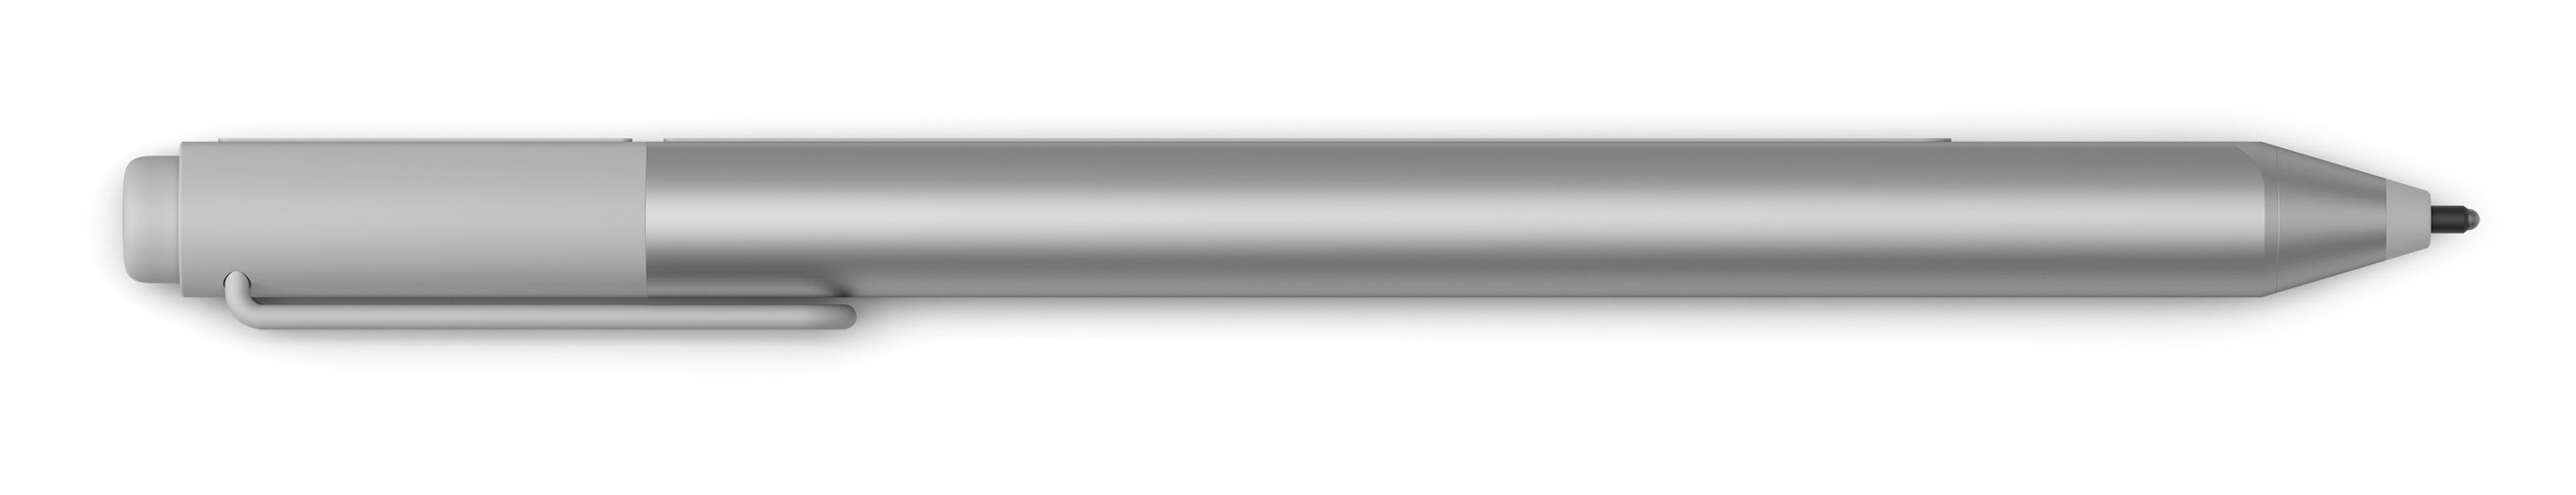 Surface Pro 4 Pen Grey gris grijs